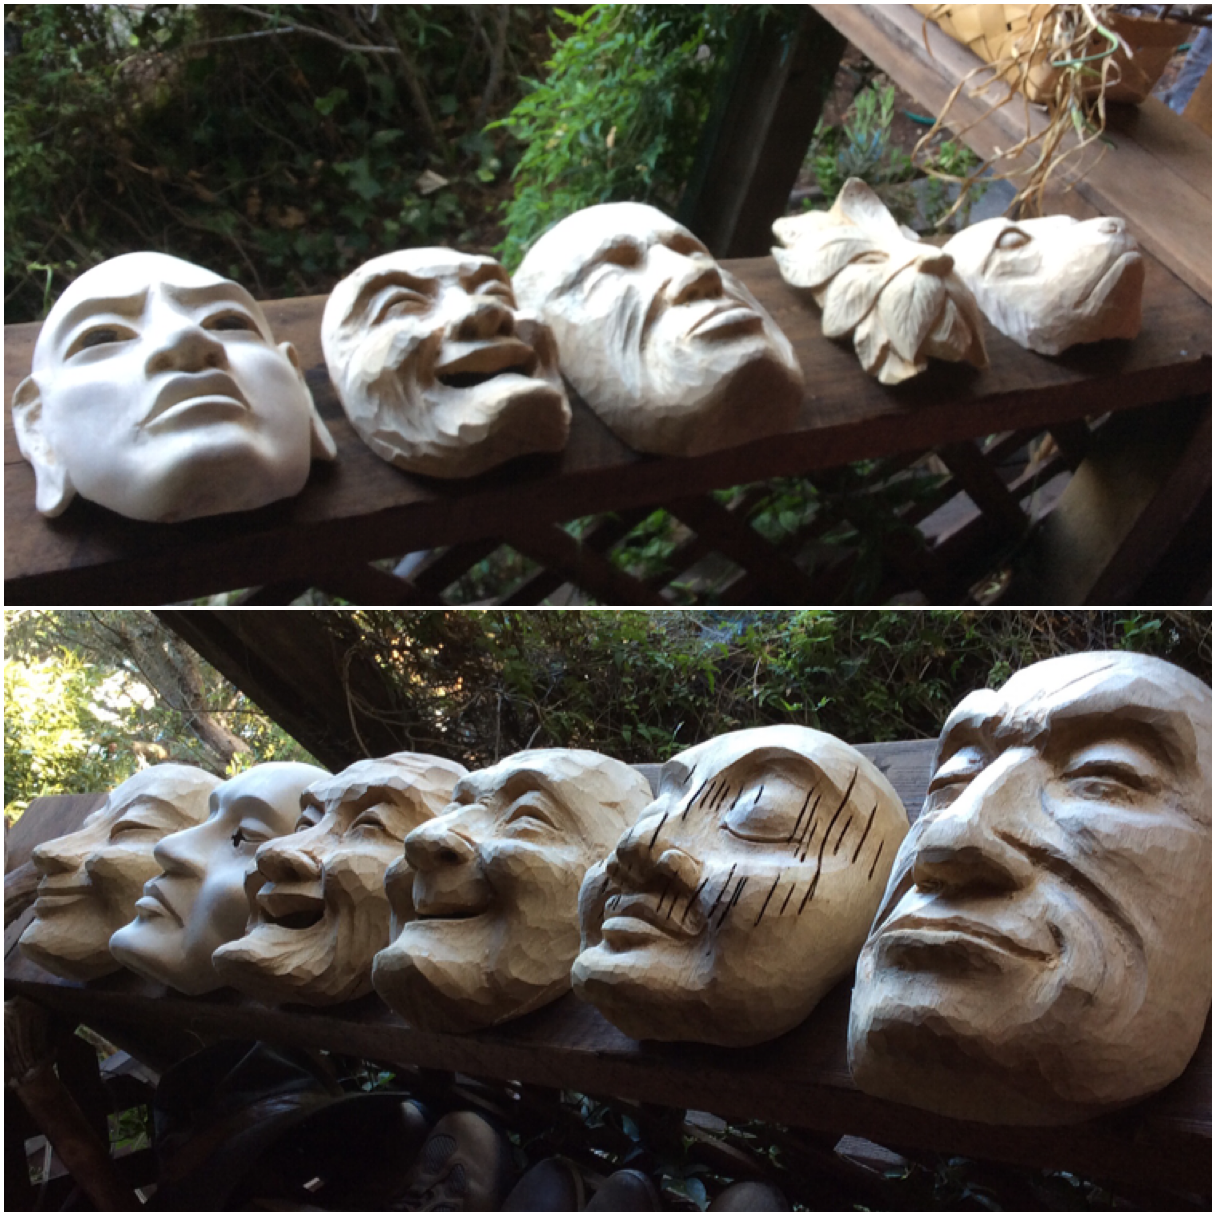 Here are the results of the final days of the from both of the Bali mask carving workshops. Everyone got far enough along to finish on their own. Lots of diversity this year.